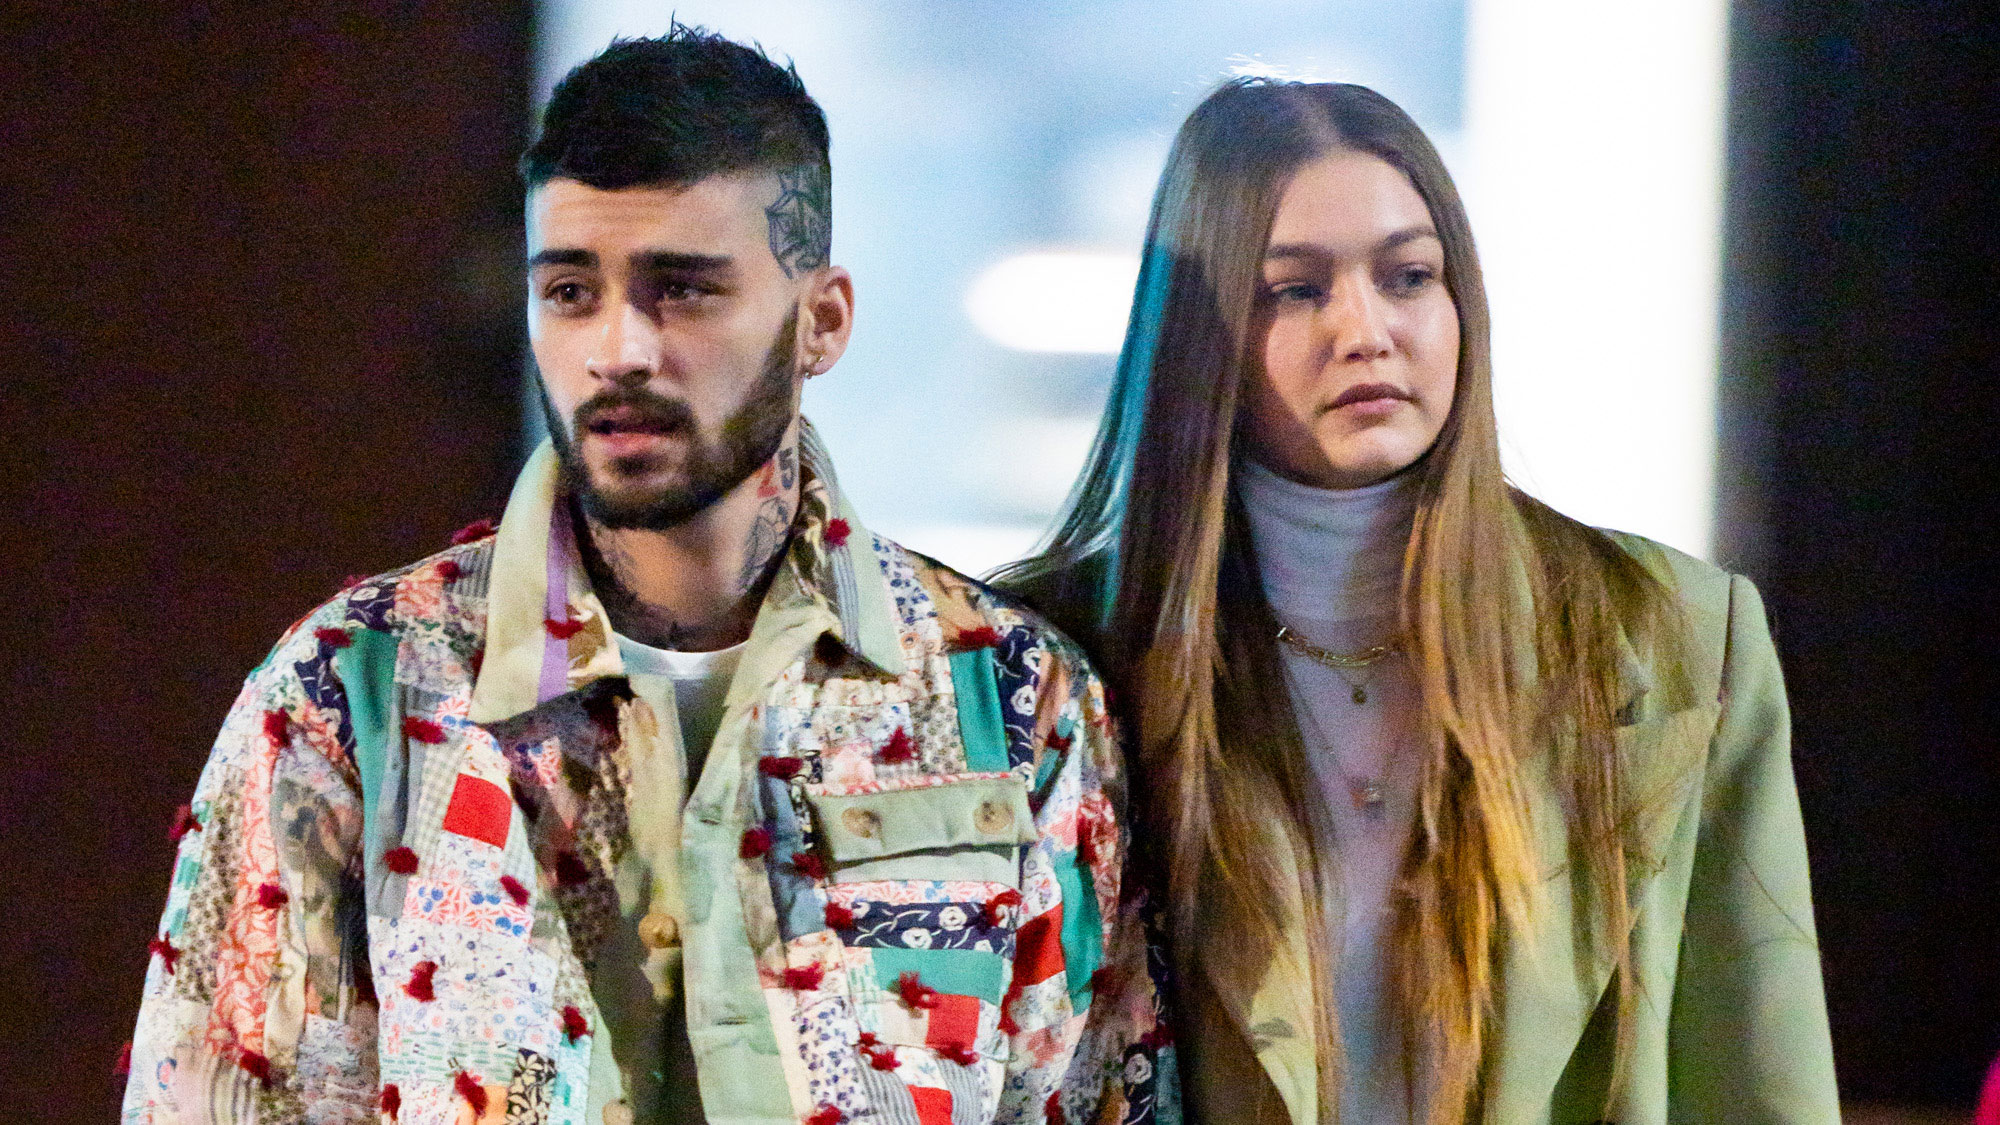 Gigi Hadid called out Jake Paul for dissing Zayn Malik